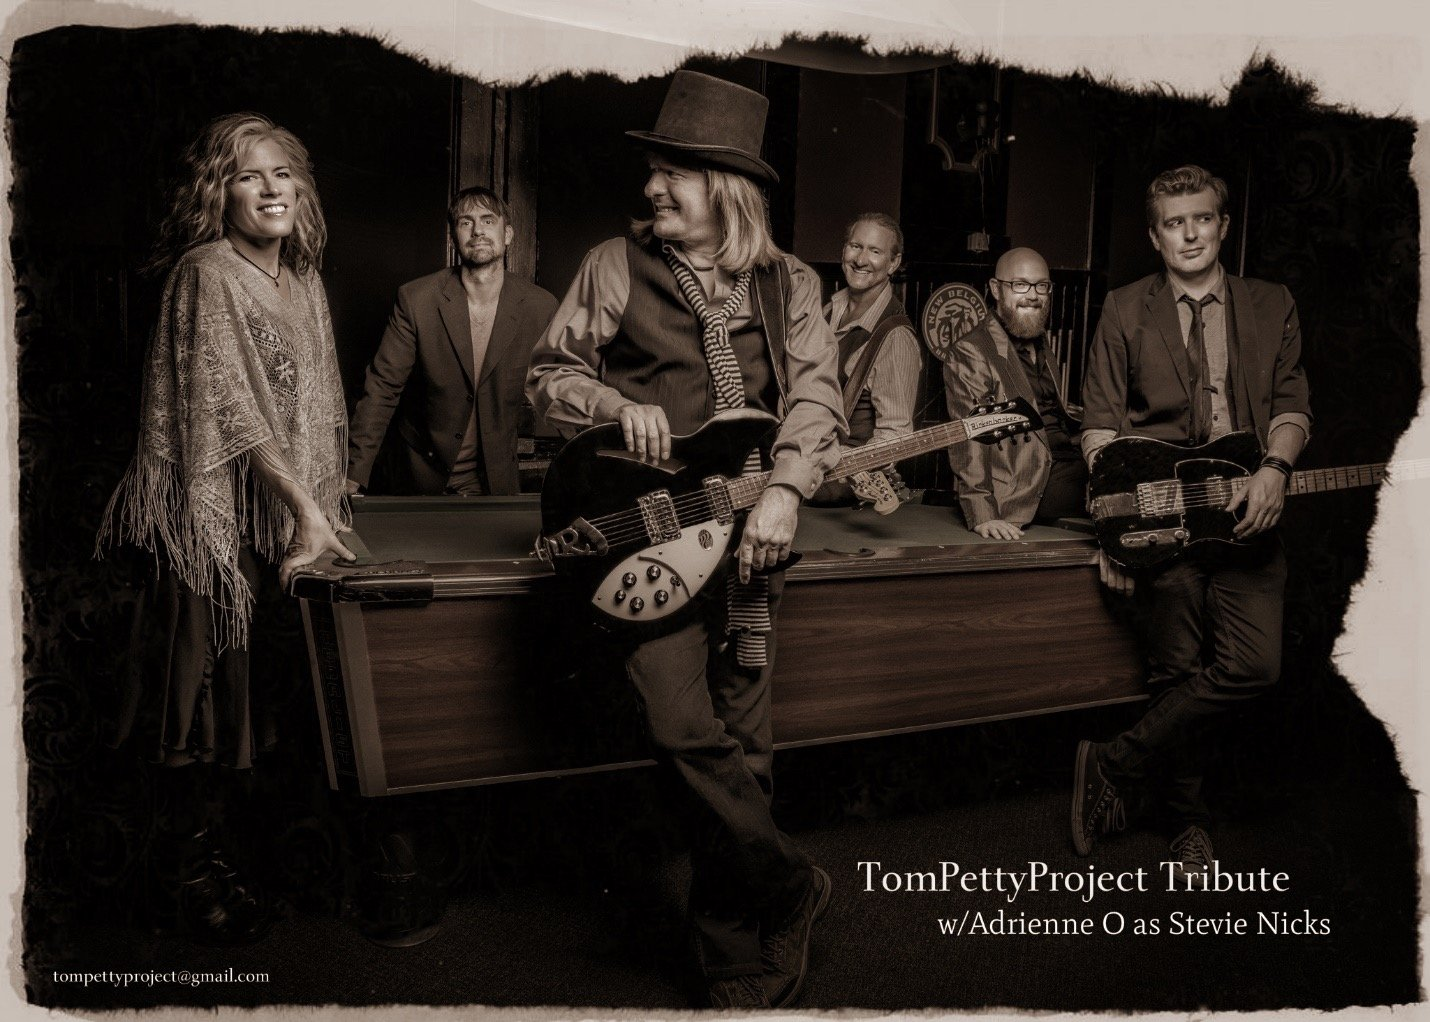 Tom Petty Project - Tom Petty Tribute Band